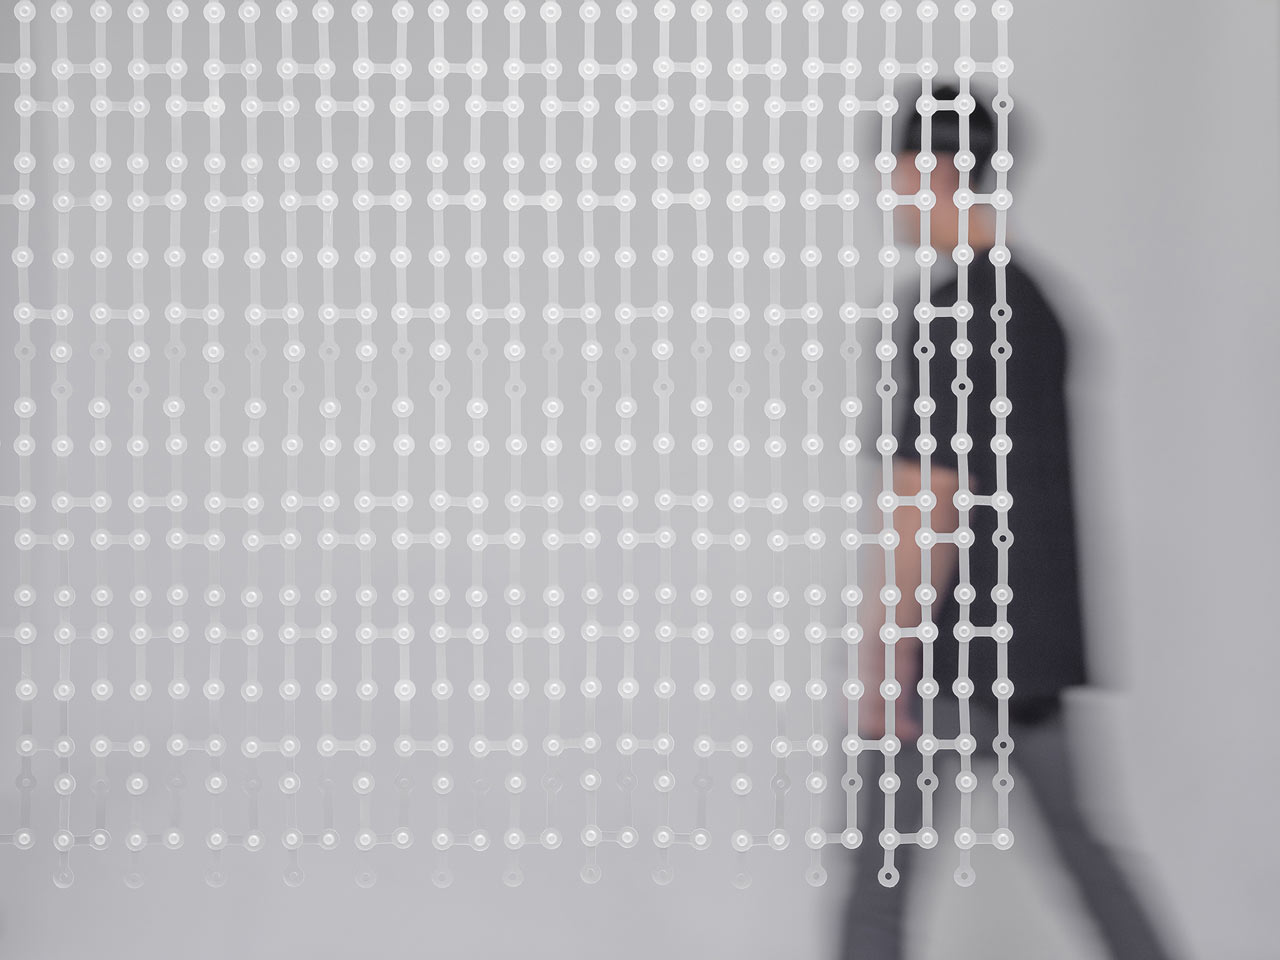 STUDIO PESI Designed a Modern, Modular Version of a Beaded Curtain